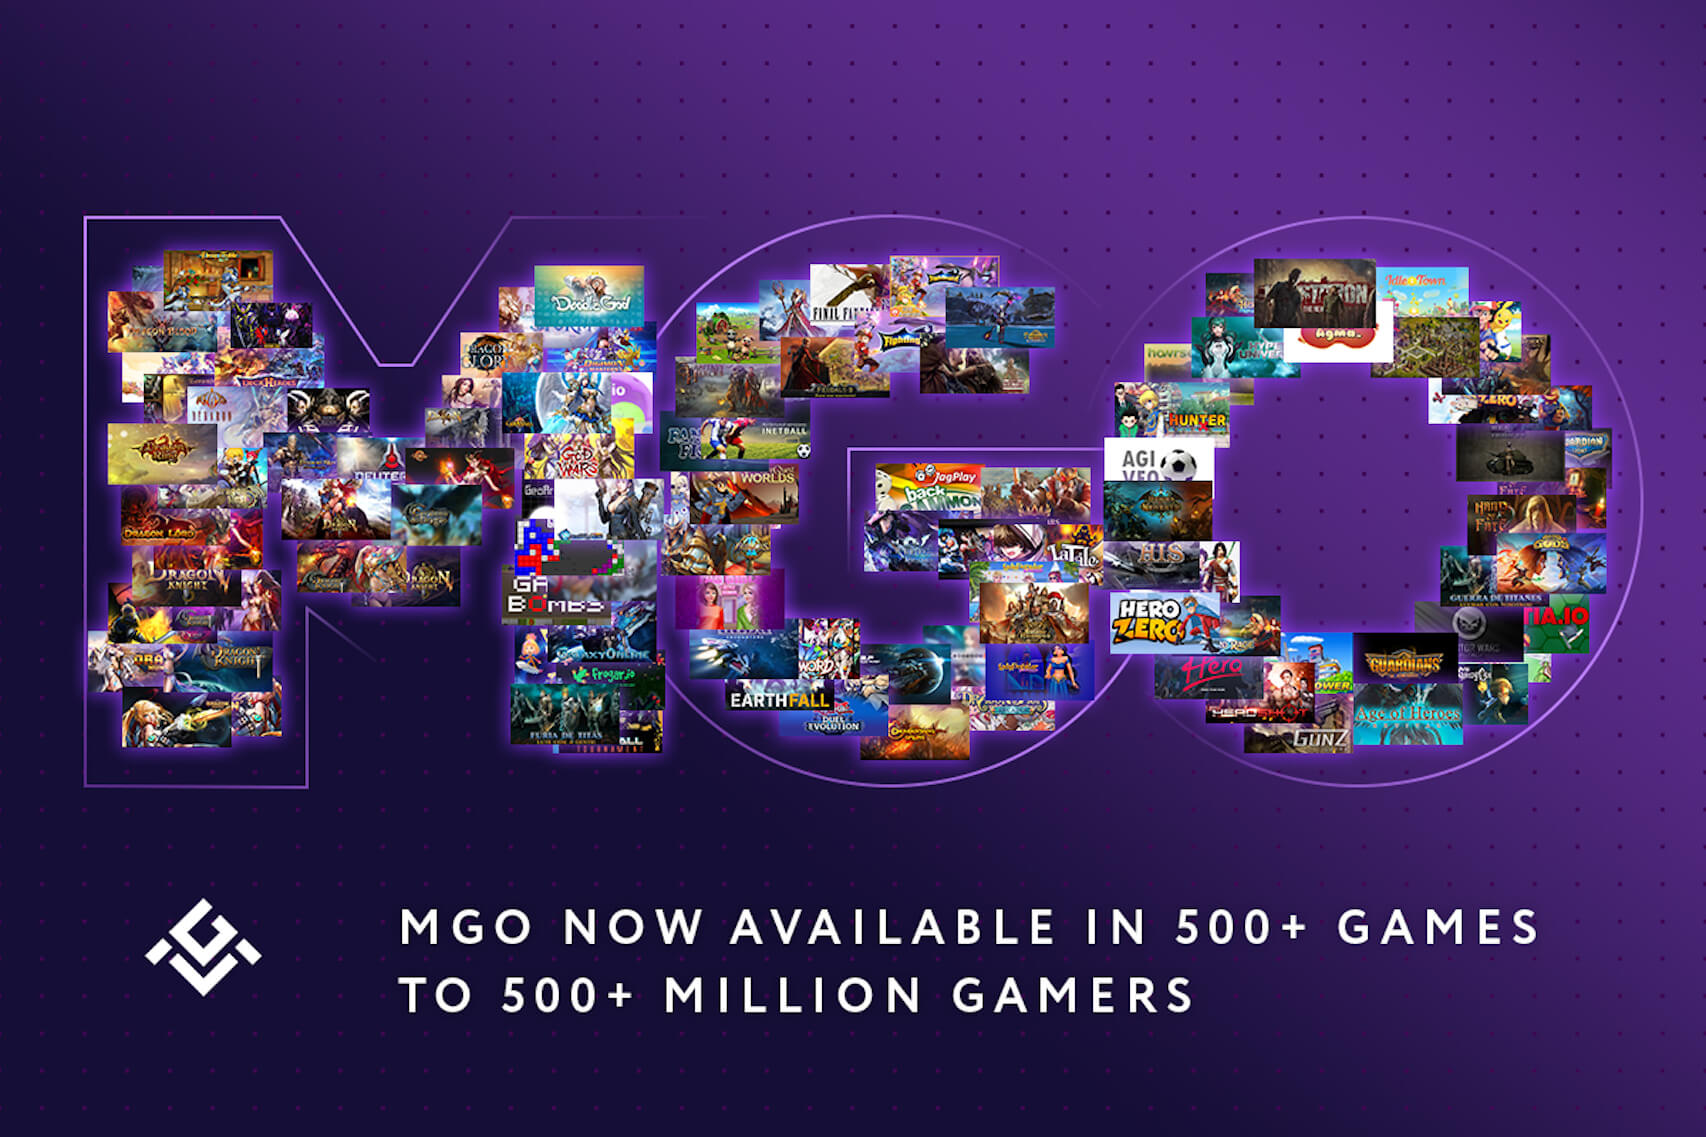 Xsolla Adds MobileGO As New Payment Method For Developers and Gamers Globally